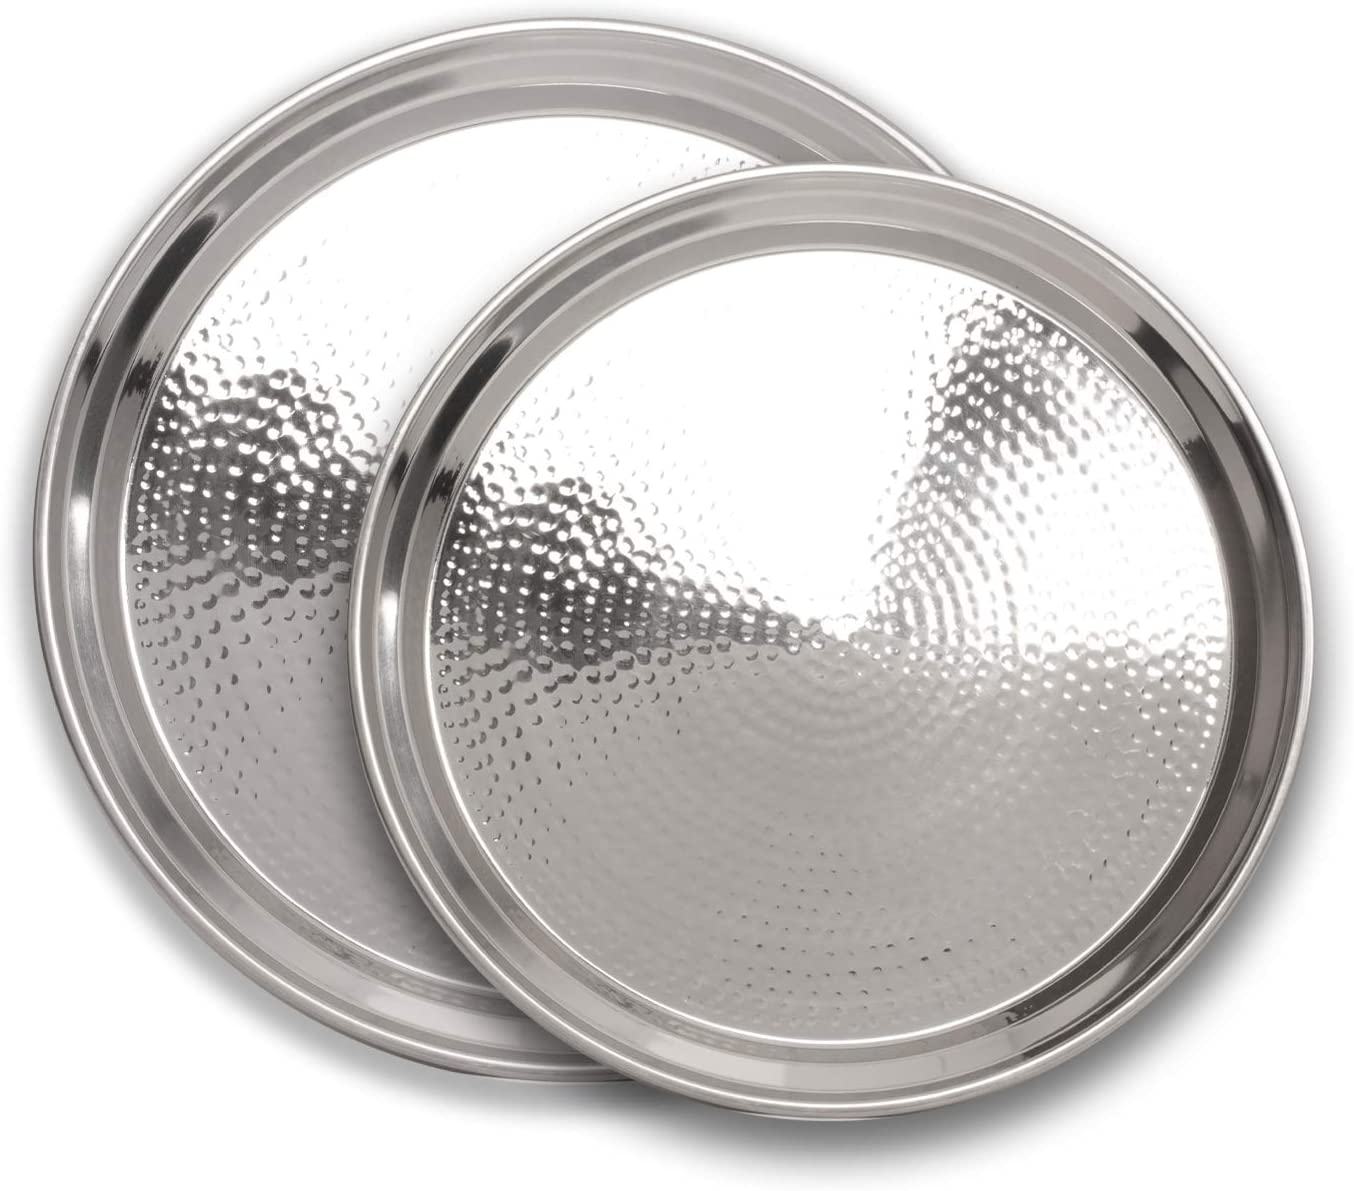 Colleta Home Stainless Steel Round Serving Tray- 2 Pc Set- Large Tray 15 inch Medium Tray 13 inch- Silver Appetizer Plates